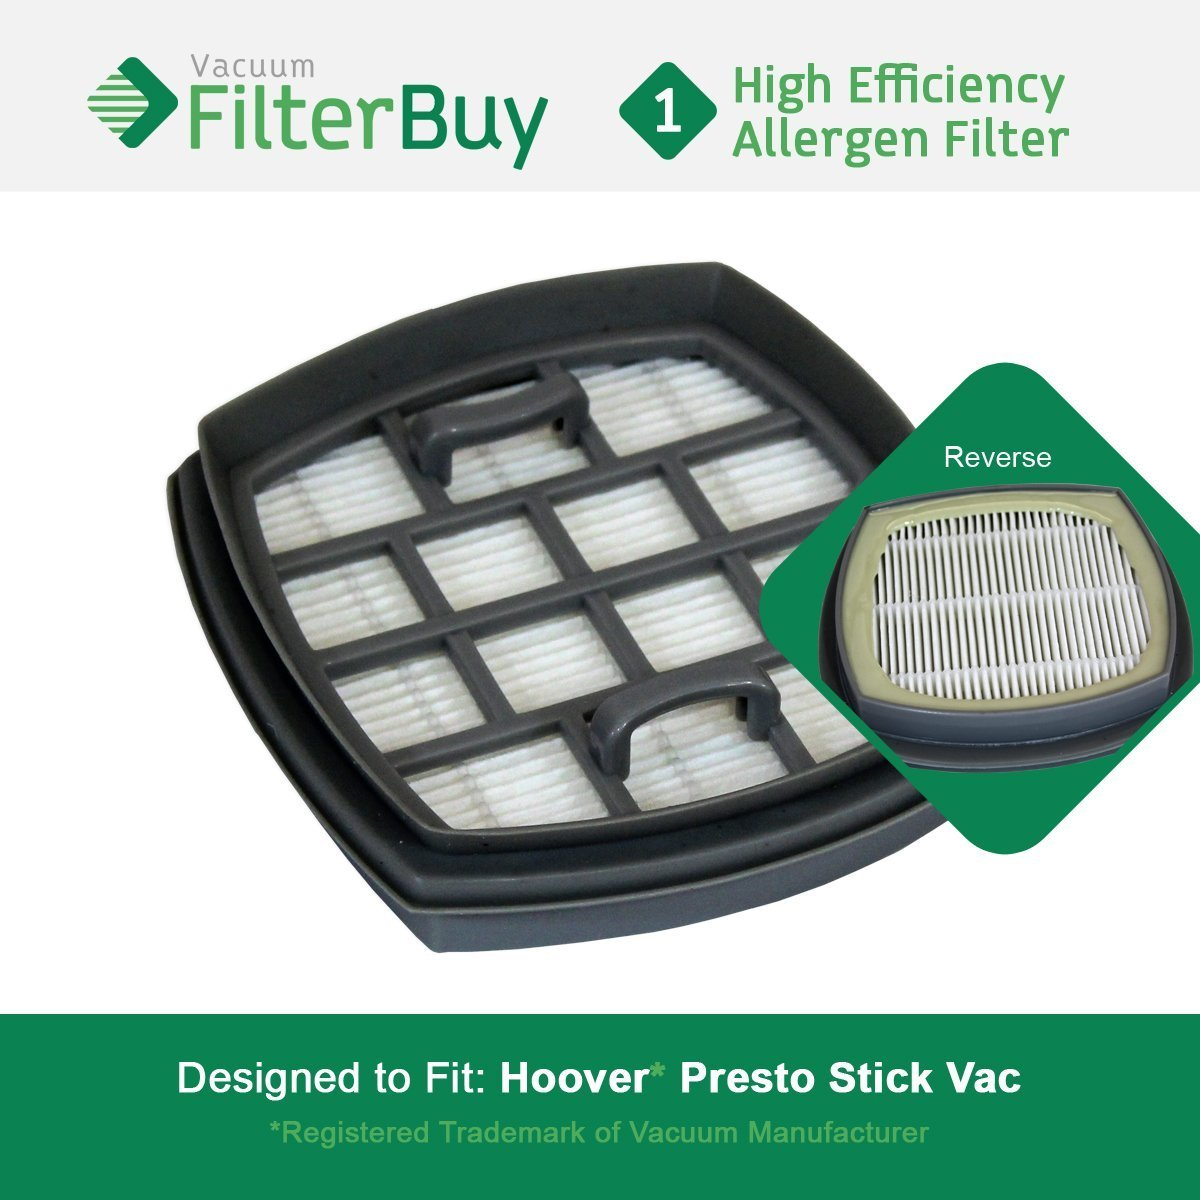 Hoover Presto Stick Vacuum Filter, Part # 440002094. Designed by FilterBuy to replace Hoover Presto 2-in-1 Cordless Stick Vacuum.